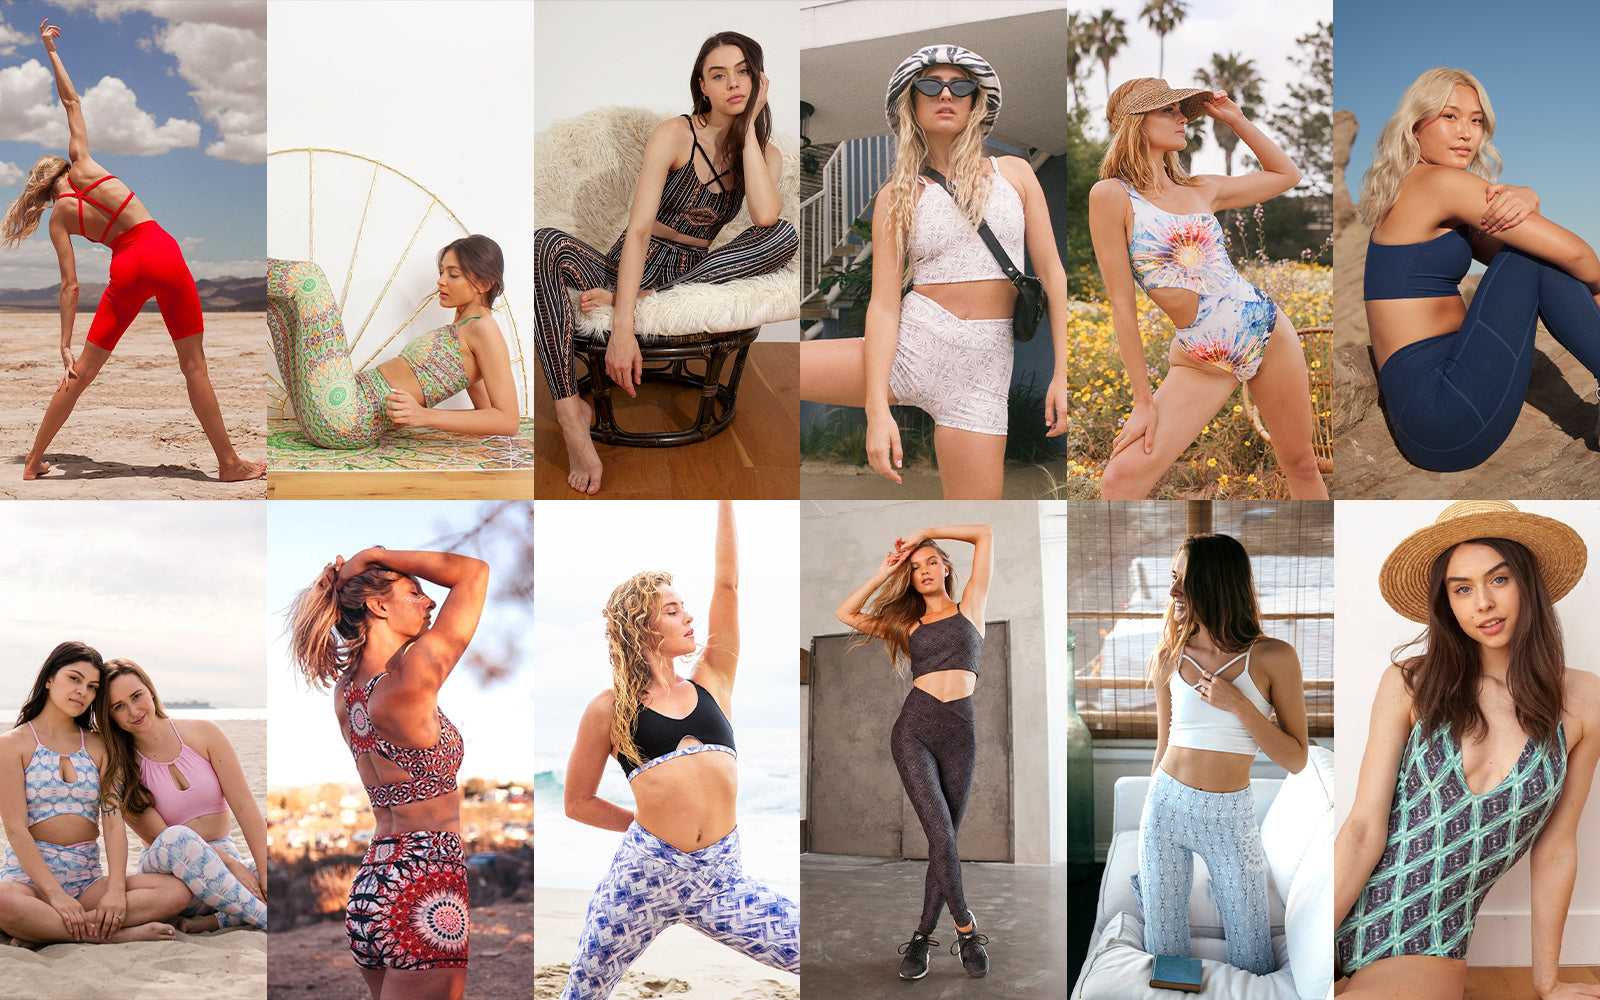 Zodiac signs as wolven pieces sustainable activewear swimwear yoga mandala trippy prints